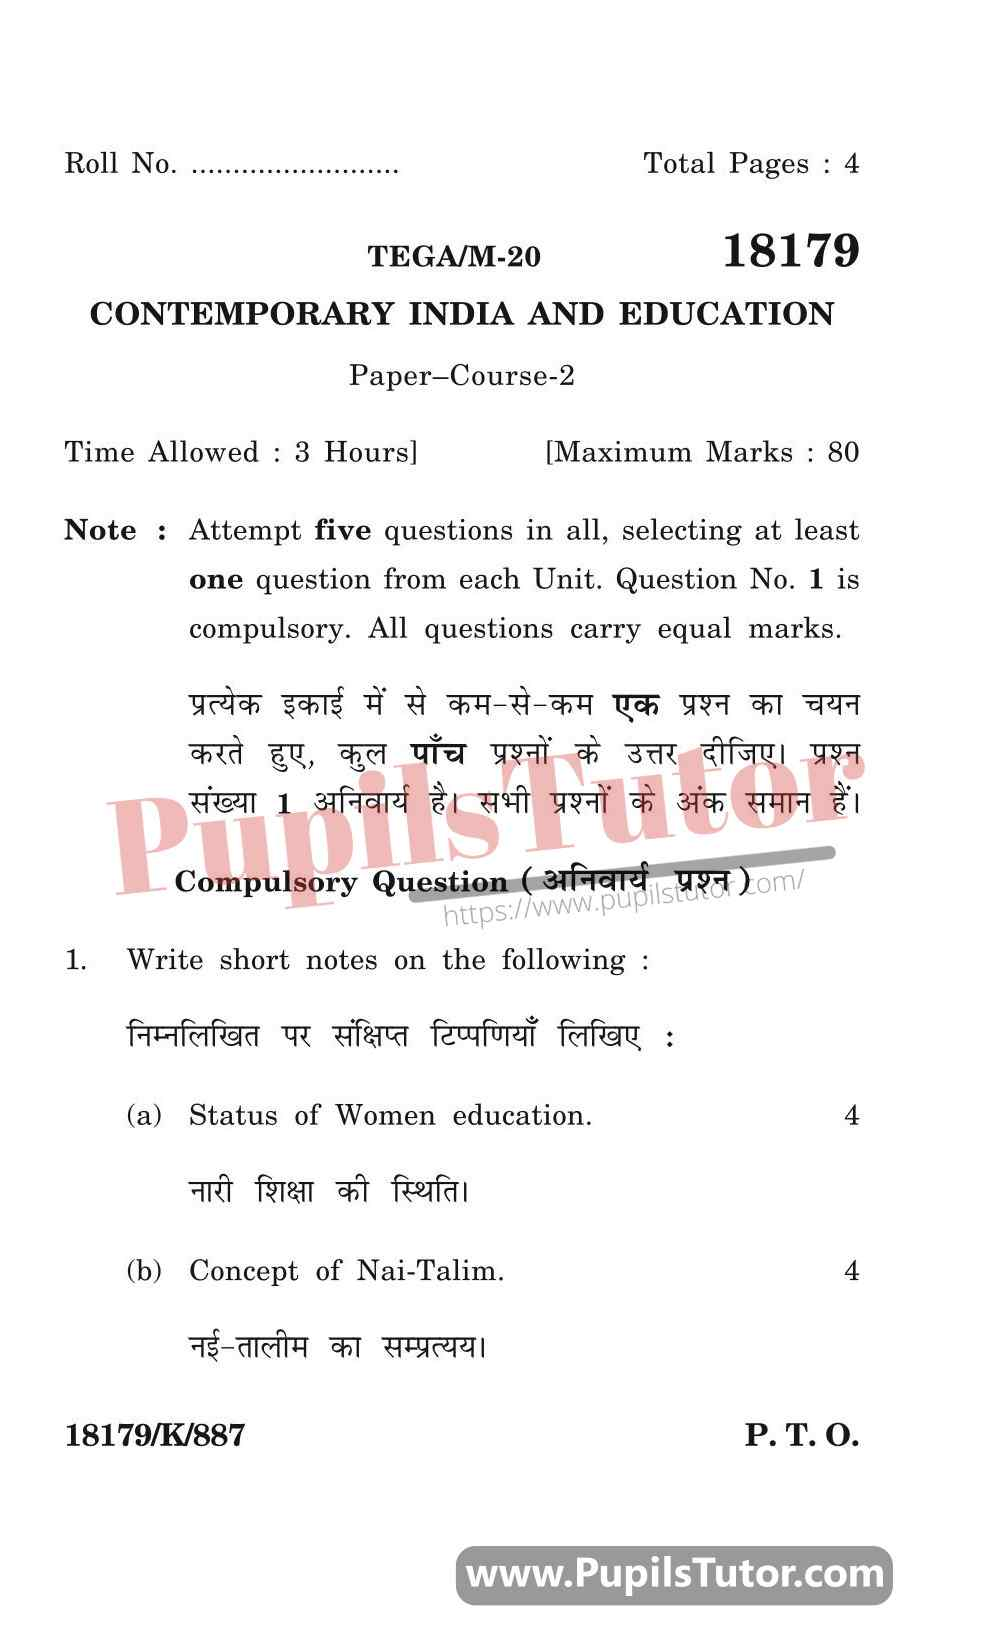 KUK (Kurukshetra University, Haryana) Contemporary India And Education Question Paper 2020 For B.Ed 1st And 2nd Year And All The 4 Semesters In English And Hindi Medium Free Download PDF - Page 1 - Pupils Tutor